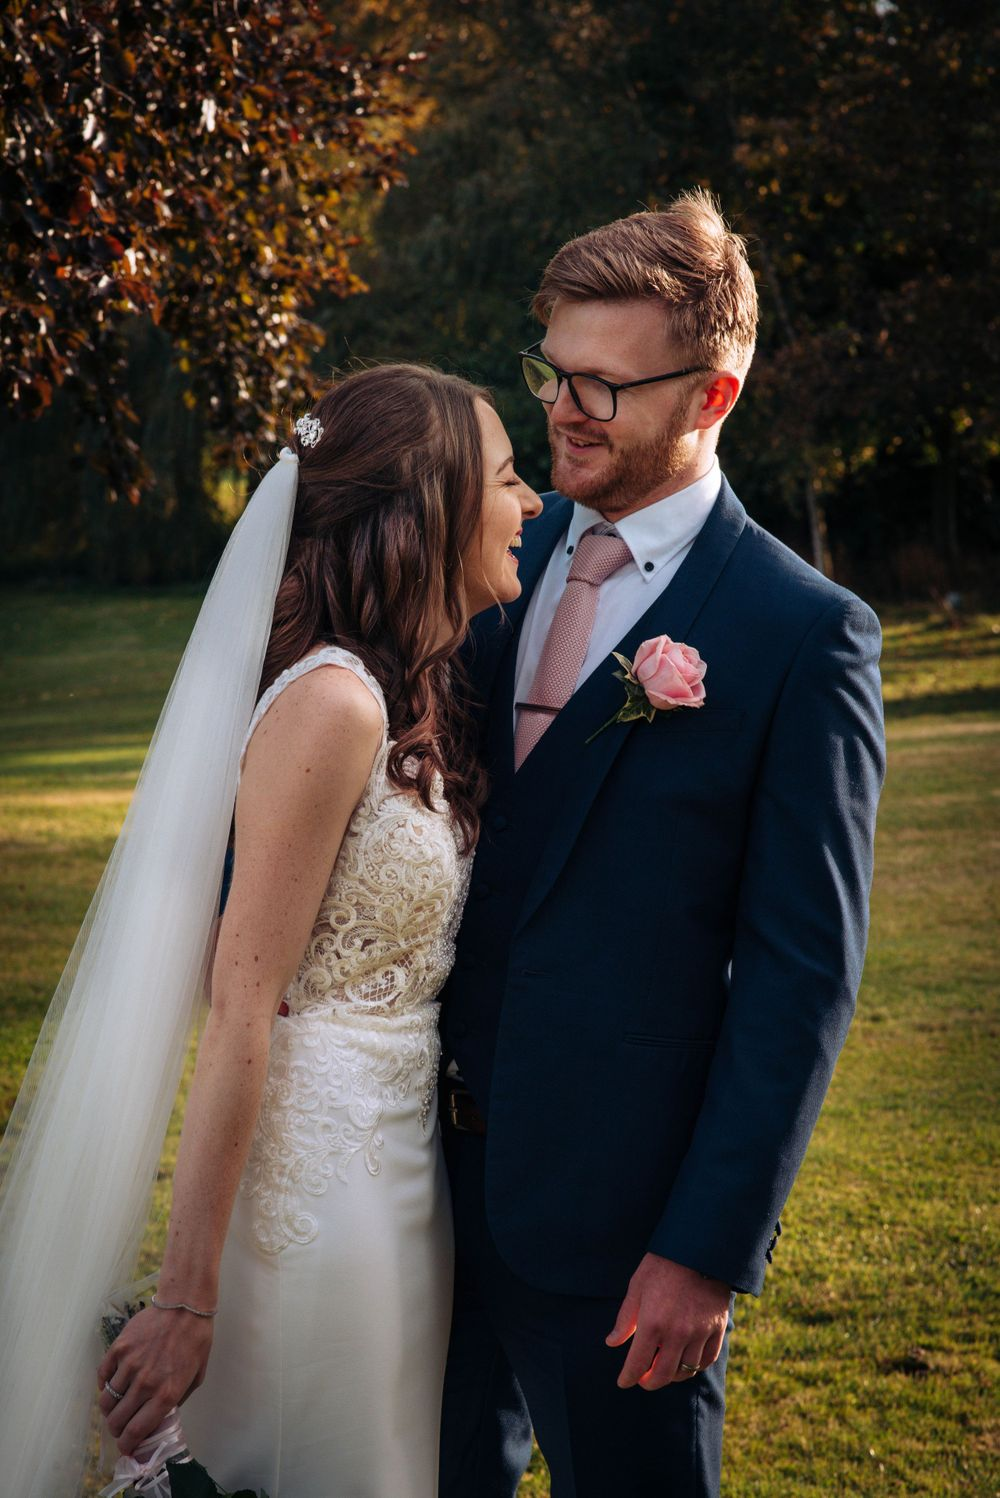 Cricklade House Hotel wedding by Zara Davis Photography, Gloucestershire giggles in the autumn sunshine